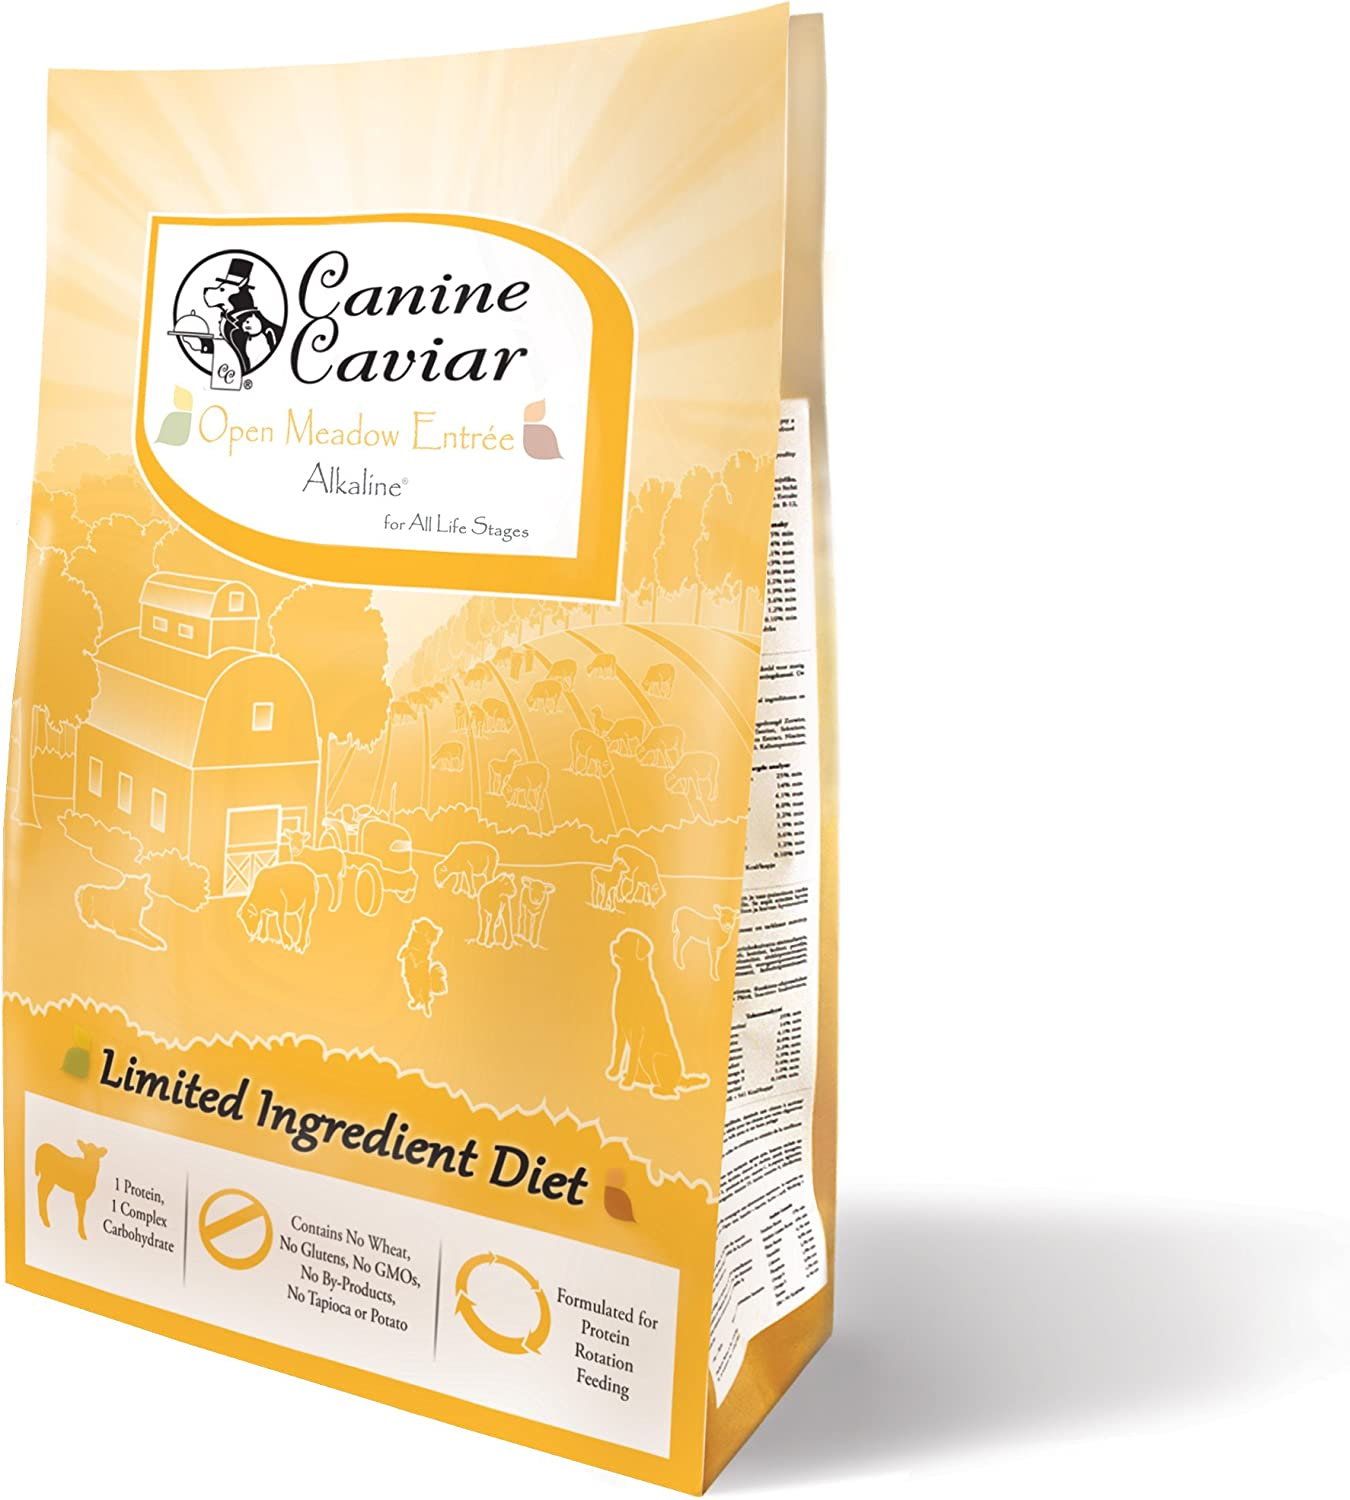 Canine Caviar Open Sky Grain Free Limited Ingredient Alkaline Holistic Entr e All Life Stages Dog Food